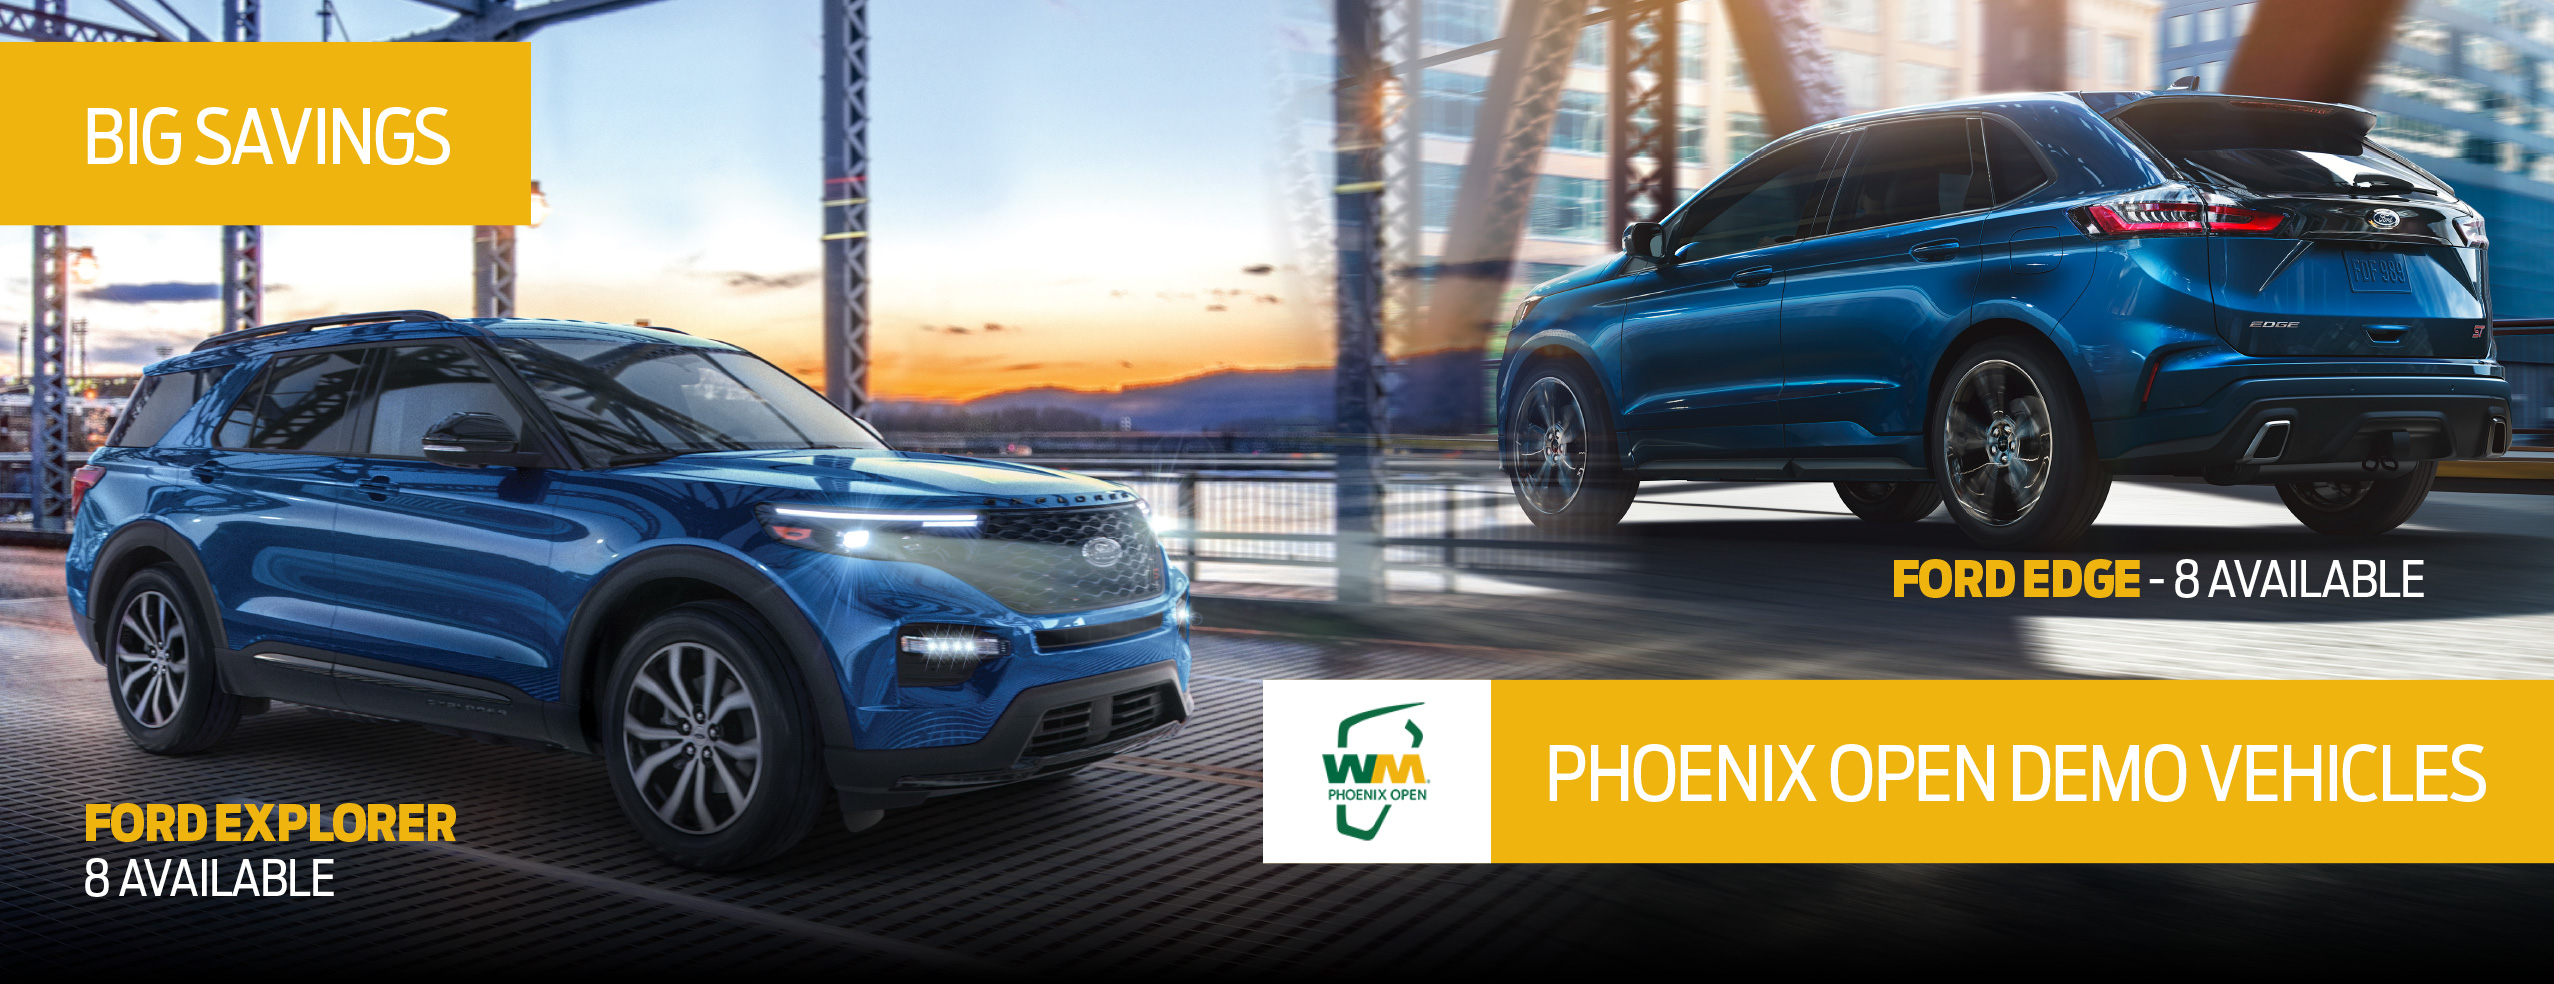 Savings on Ford Explorer and Ford Edge